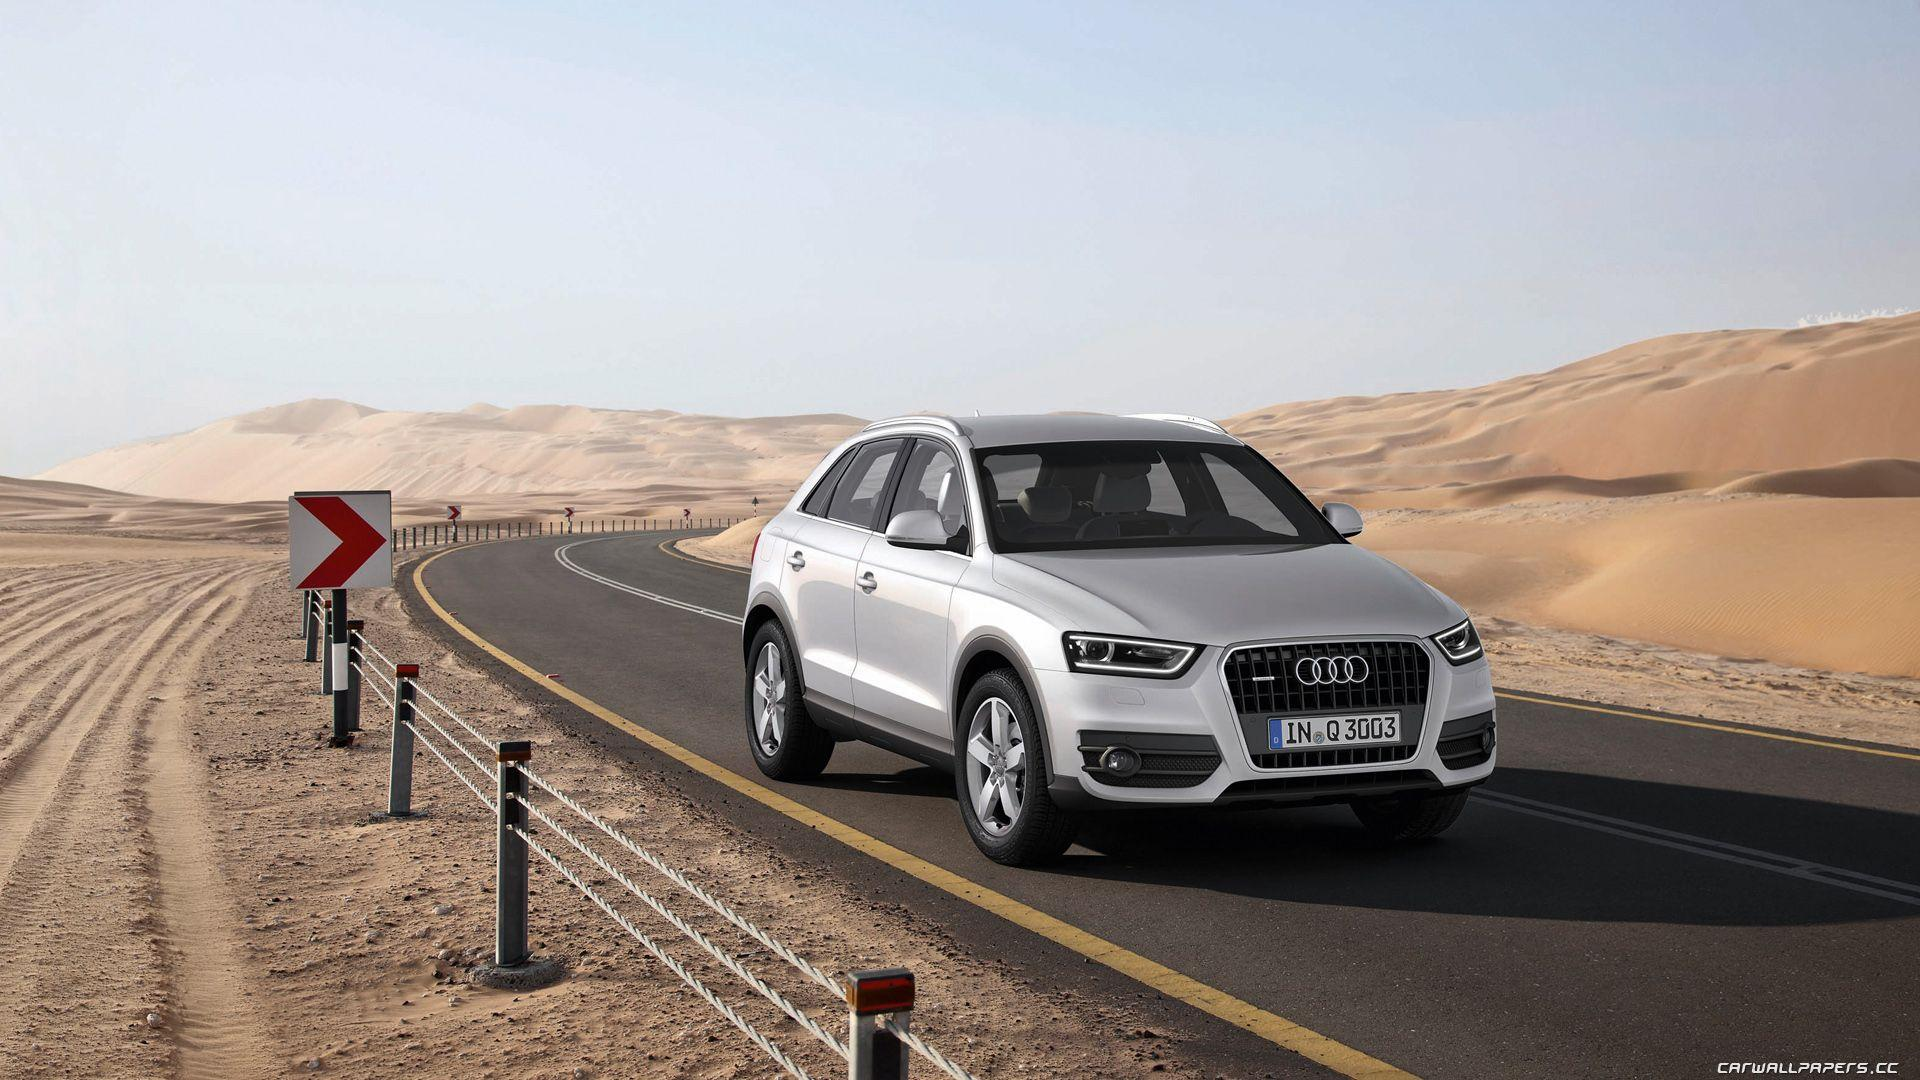 Image Audi Q3 Wallpaper Backgrounds Wallpapers